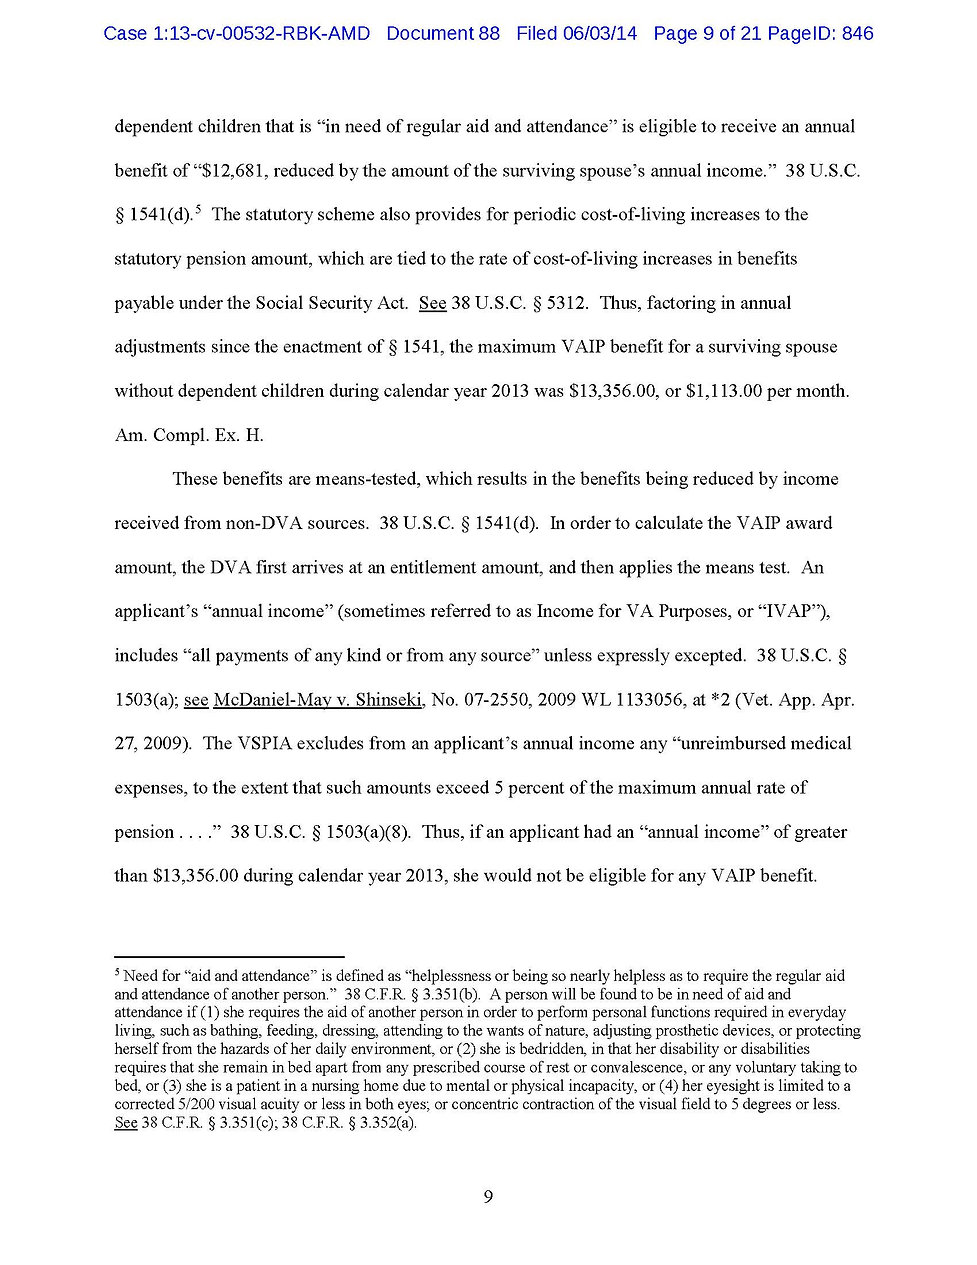 Breakdown of Pension for Medicaid_Page_09.jpg